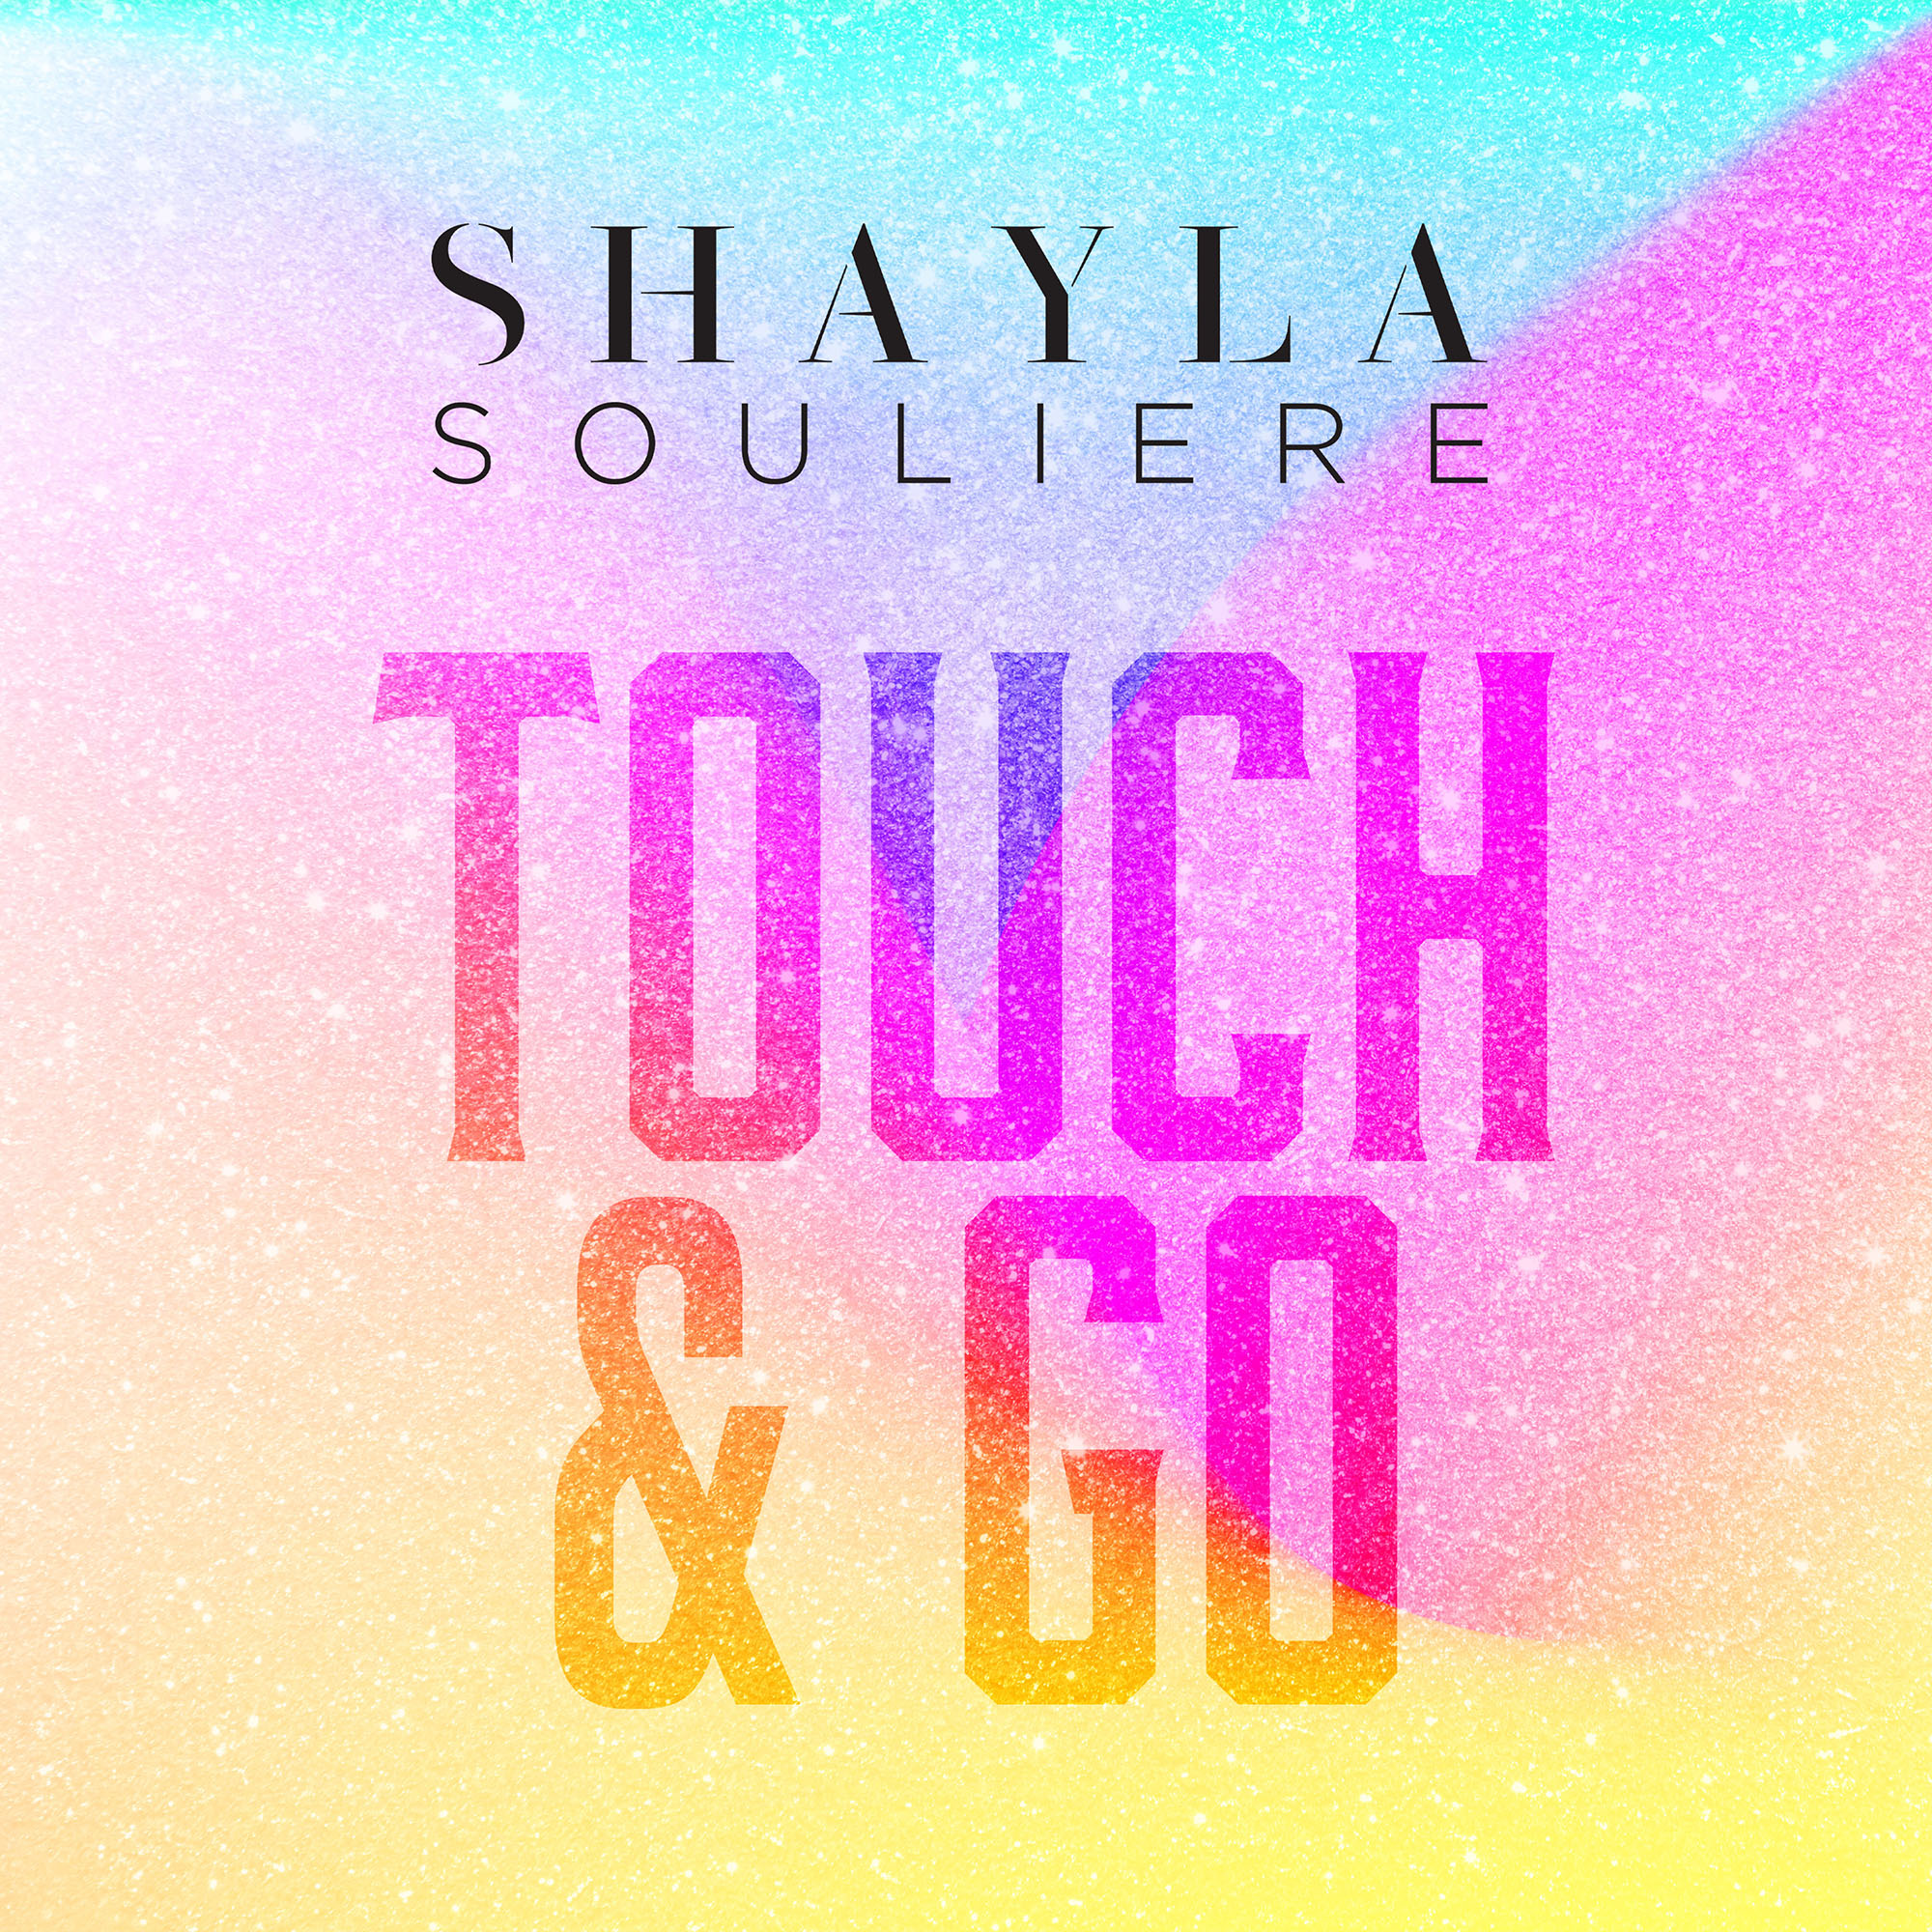 """Shayla Souliere's """"Touch & Go"""": An Upbeat Tune About THIS!"""